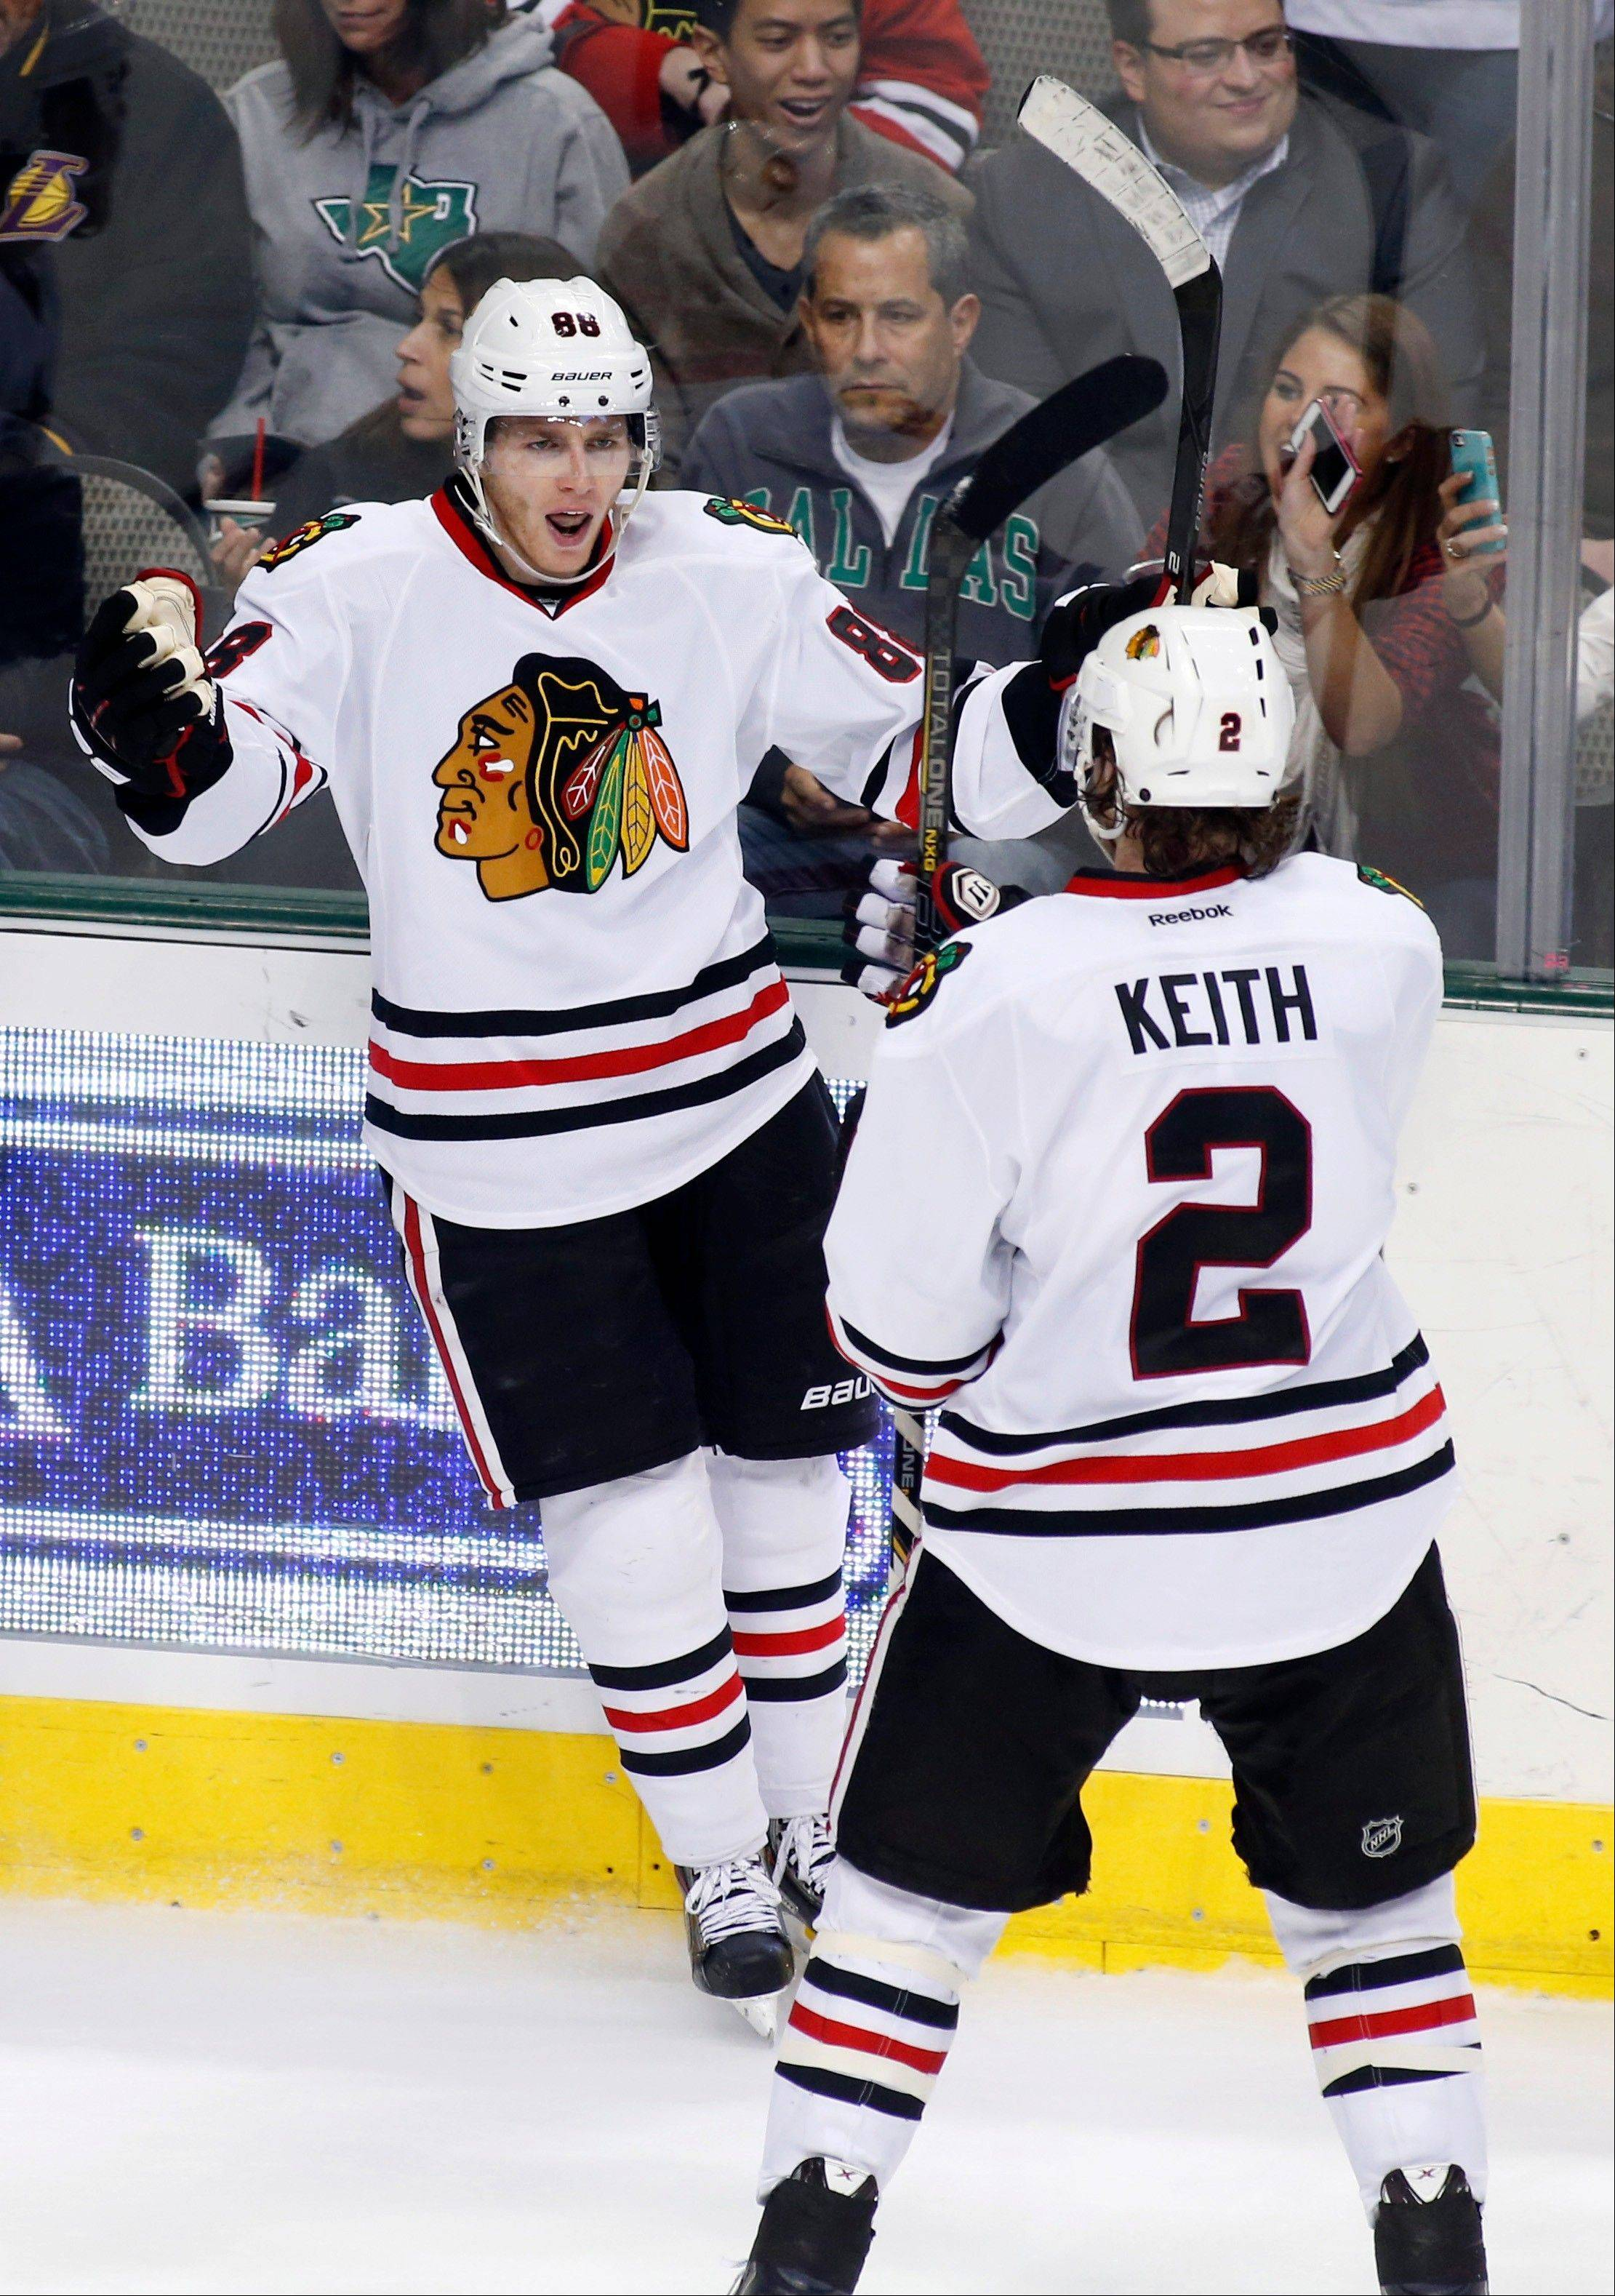 Blackhawks right wing Patrick Kane, left, celebrates his goal with defenseman Duncan Keith (2) during Saturday's game against the Dallas Stars. The Hawks won 5-2.